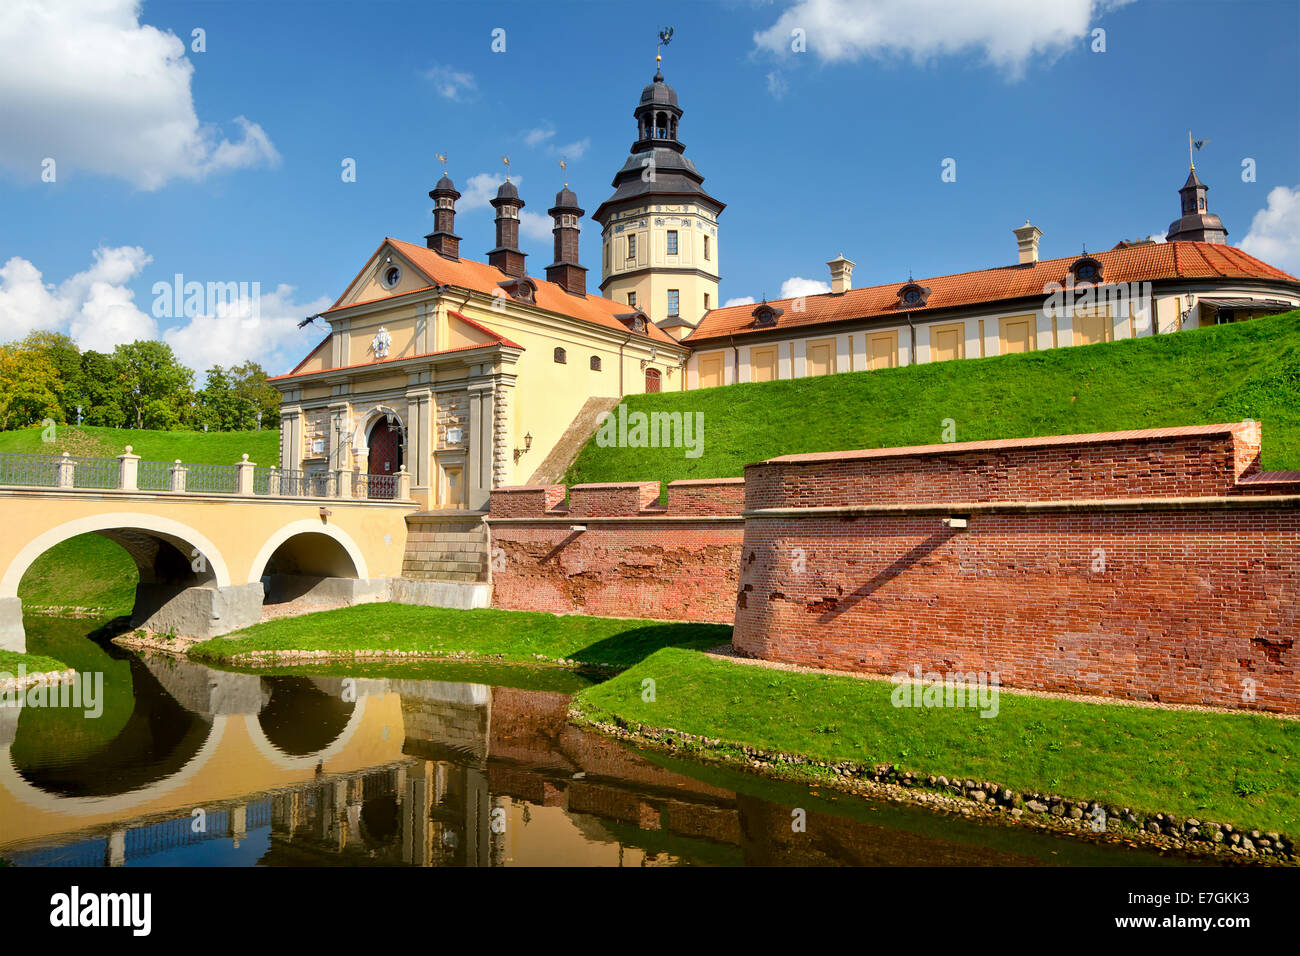 View of medieval castle near Nesvizh town of Belarus Republic Stock Photo